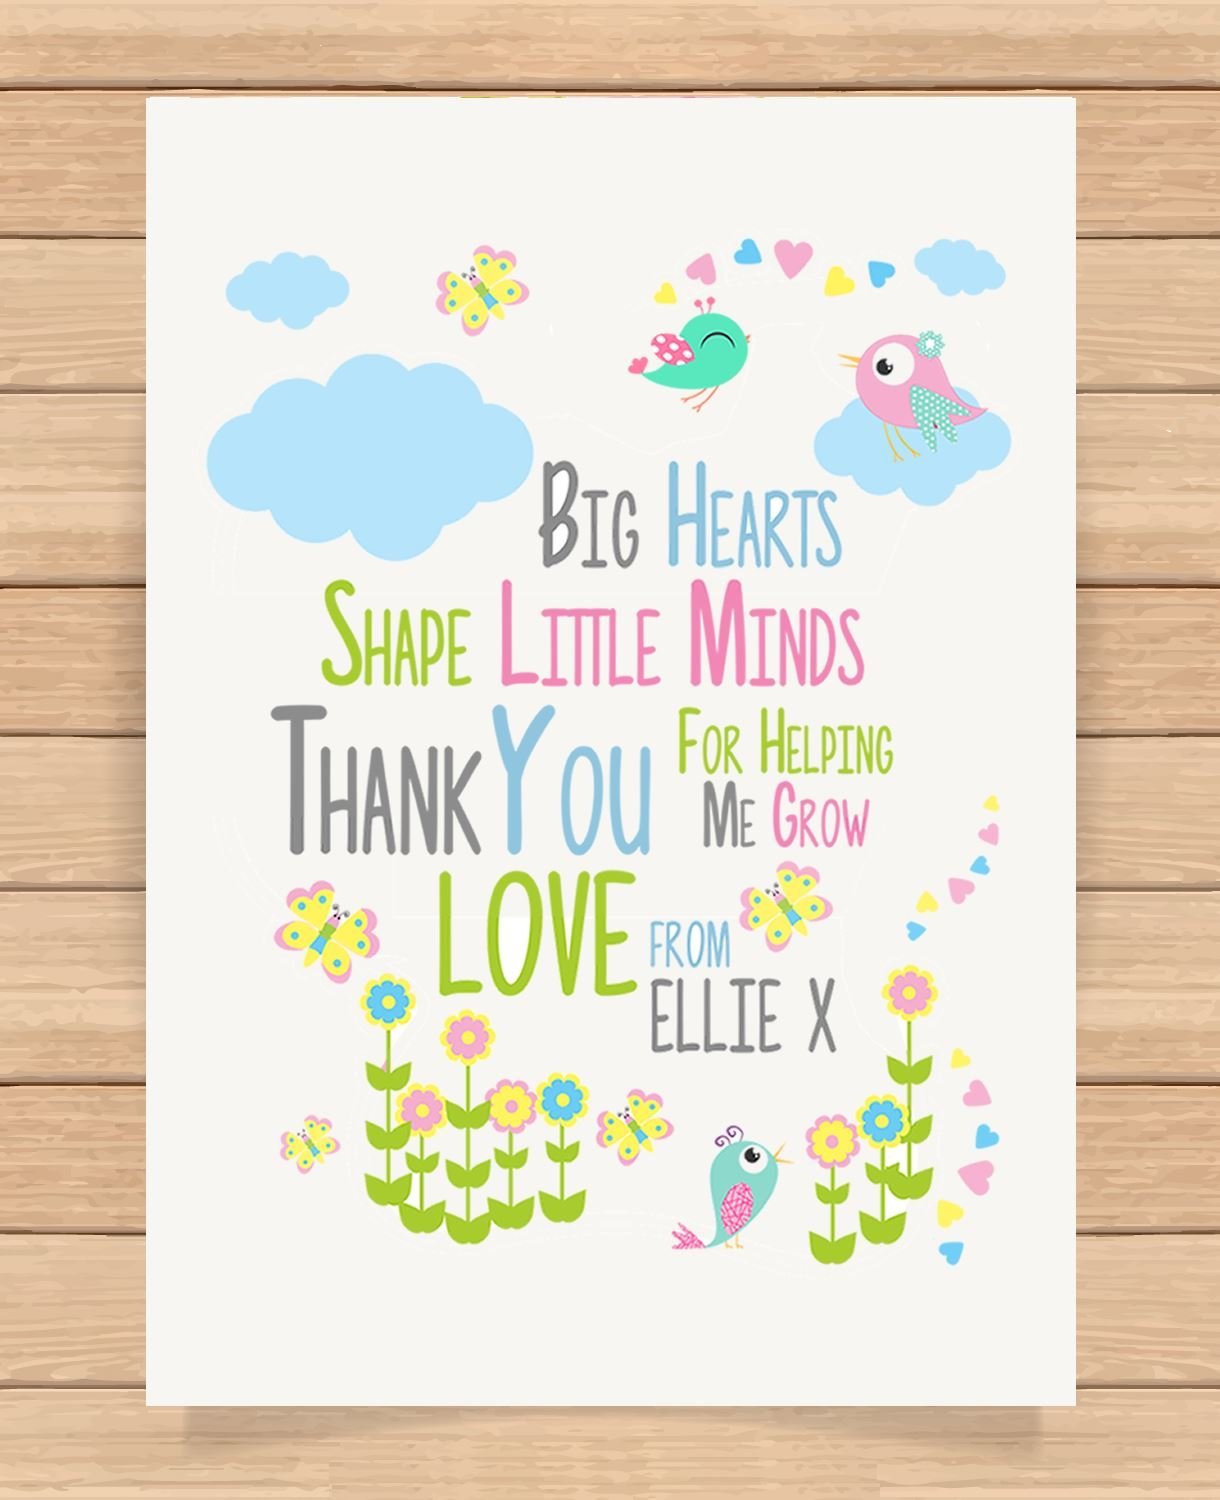 Personalised Presents Gifts For Nursery Teachers End Of Term Birthday Christmas Xmas Big Hearts Thank You Poem Prints Posters Wall Art Unusual Special